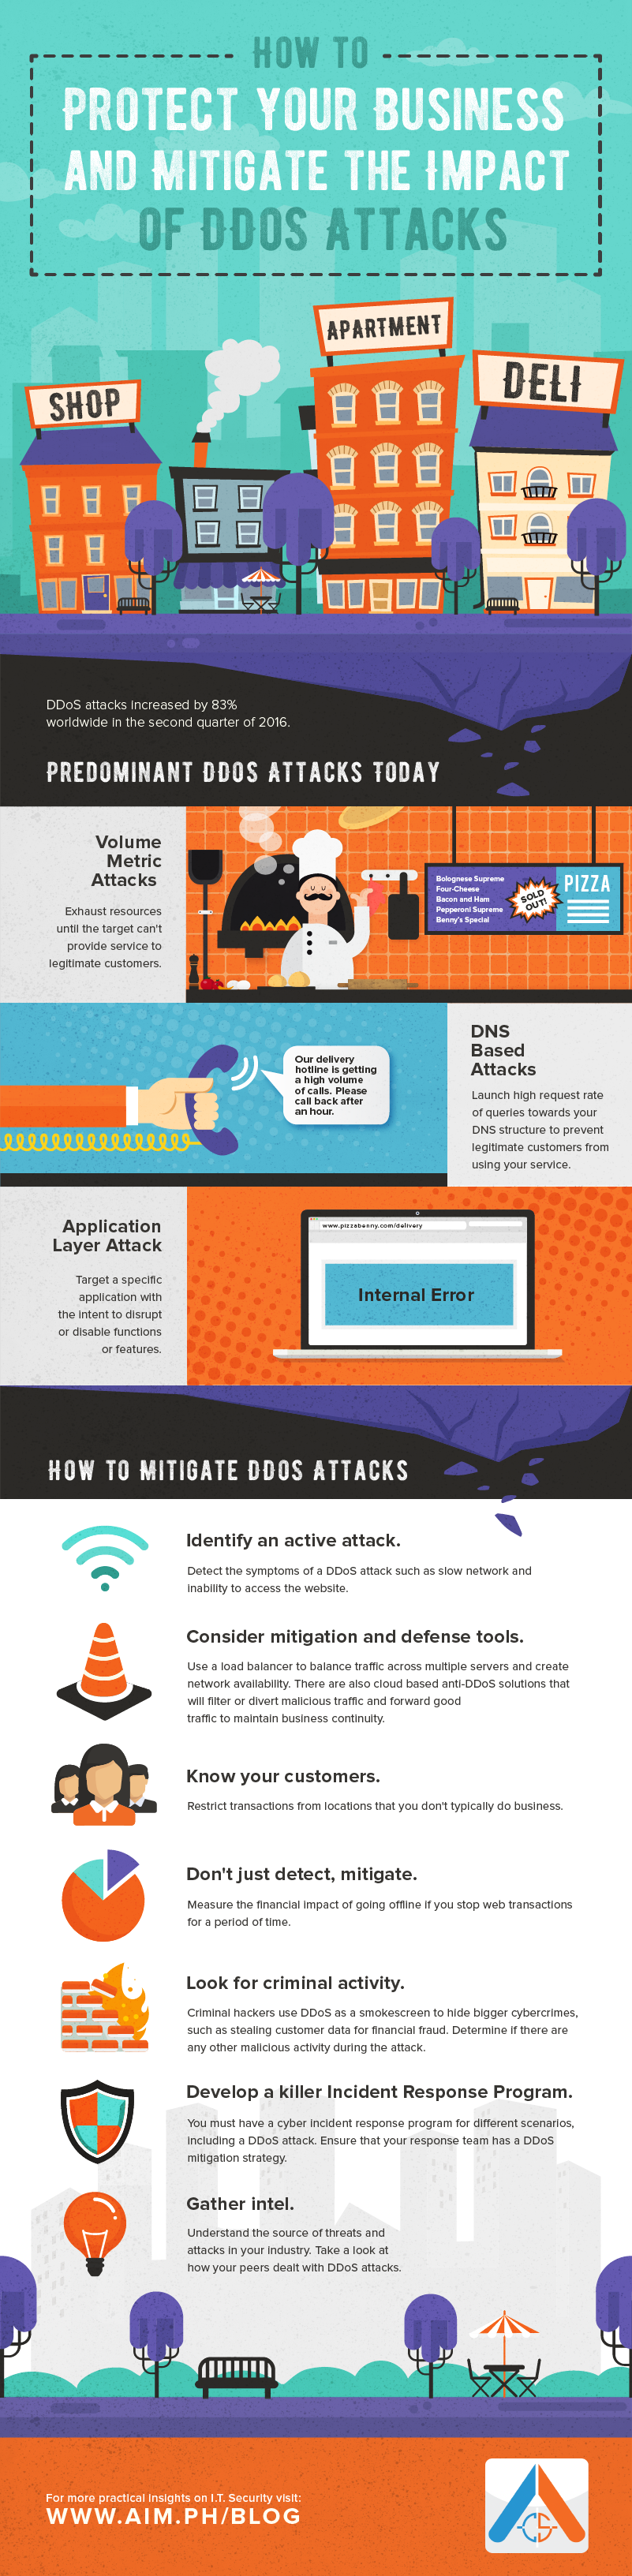 How to Protect Your Business and Mitigate DDoS Attacks